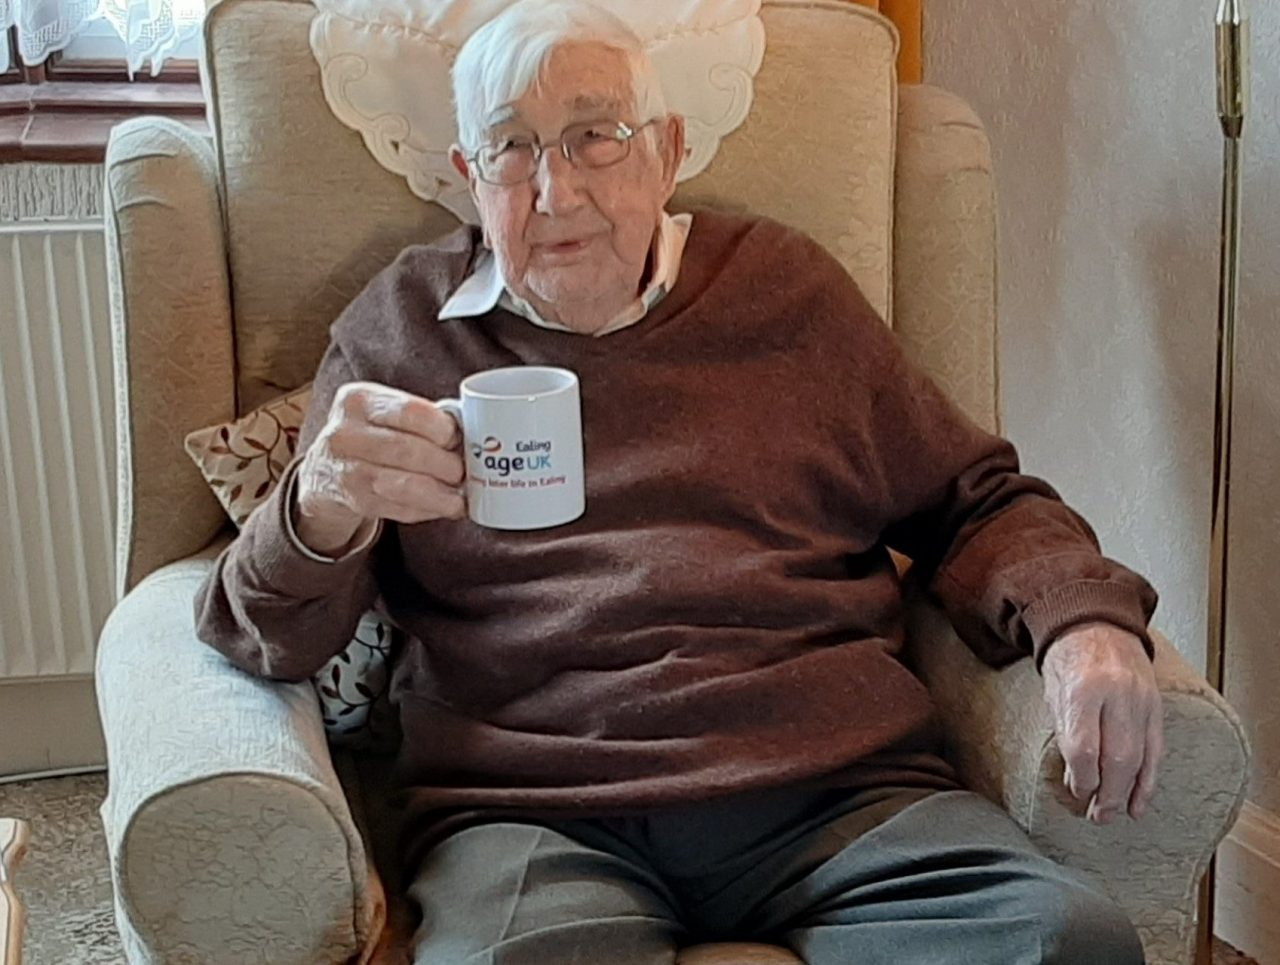 'Lifeline' phone support for isolated older people in Ealing